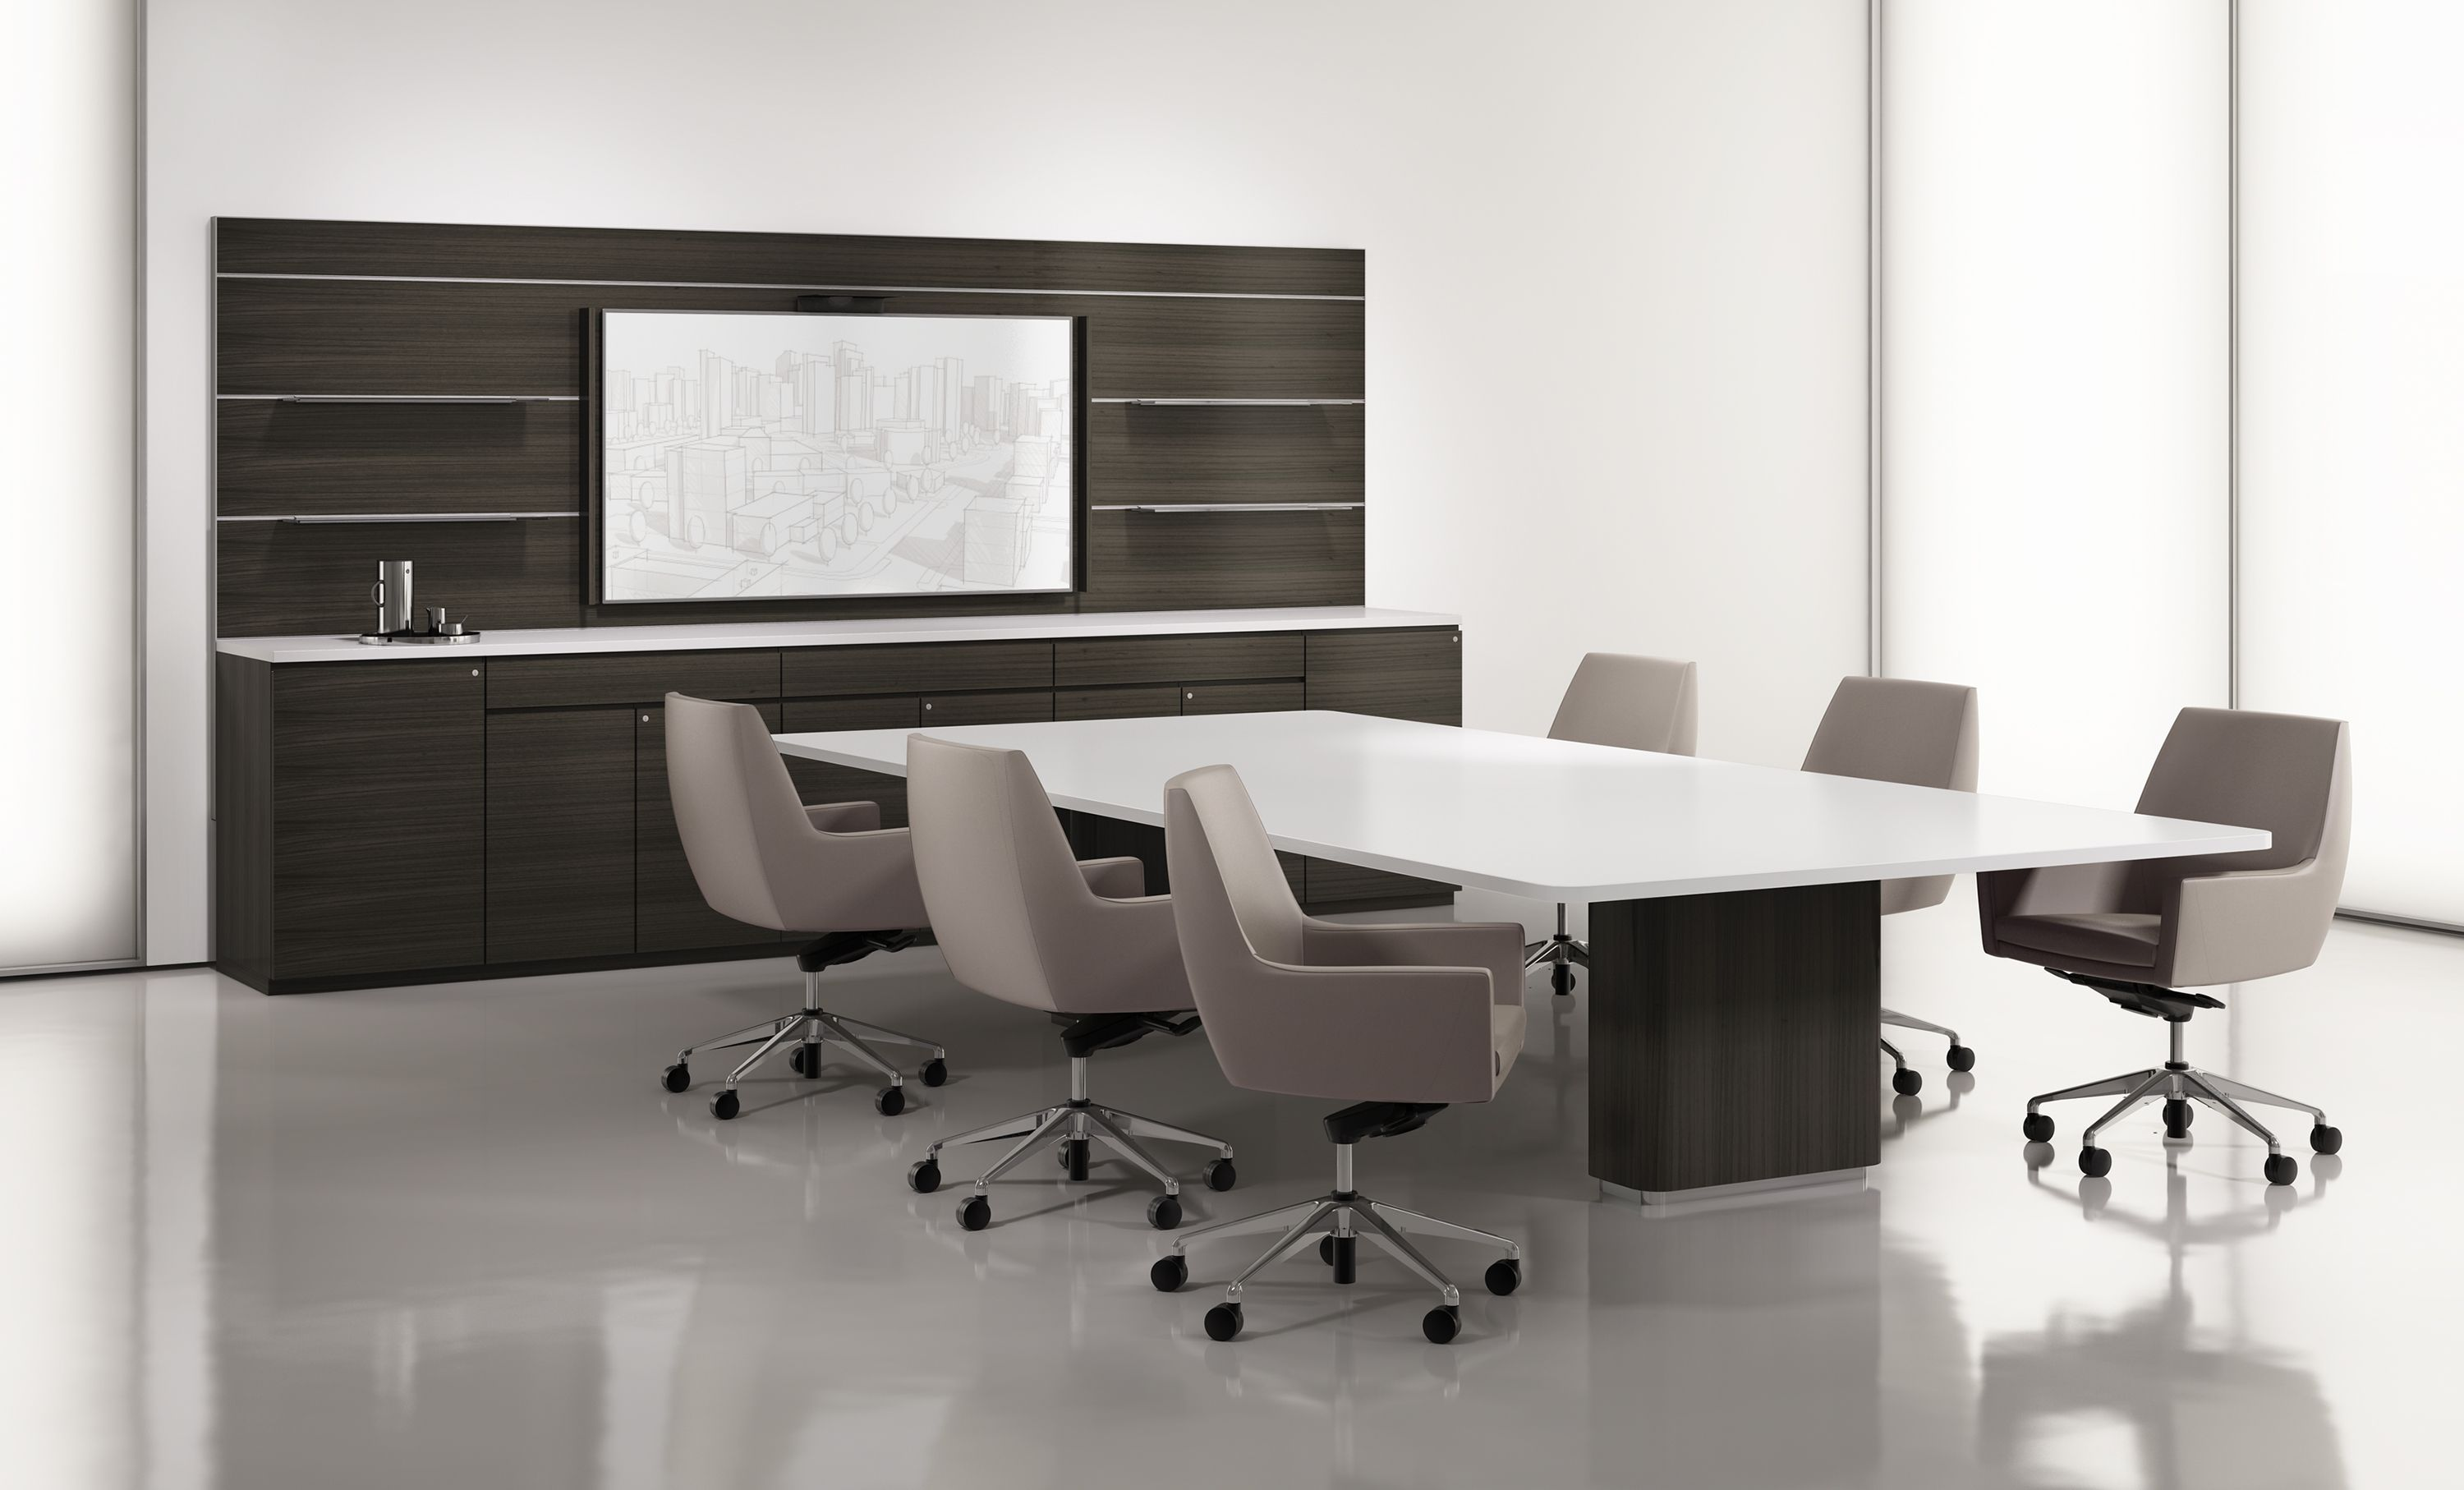 AKA Workwall Conference Table In Corian Top And Veneer Legs Cardan - Corian conference table